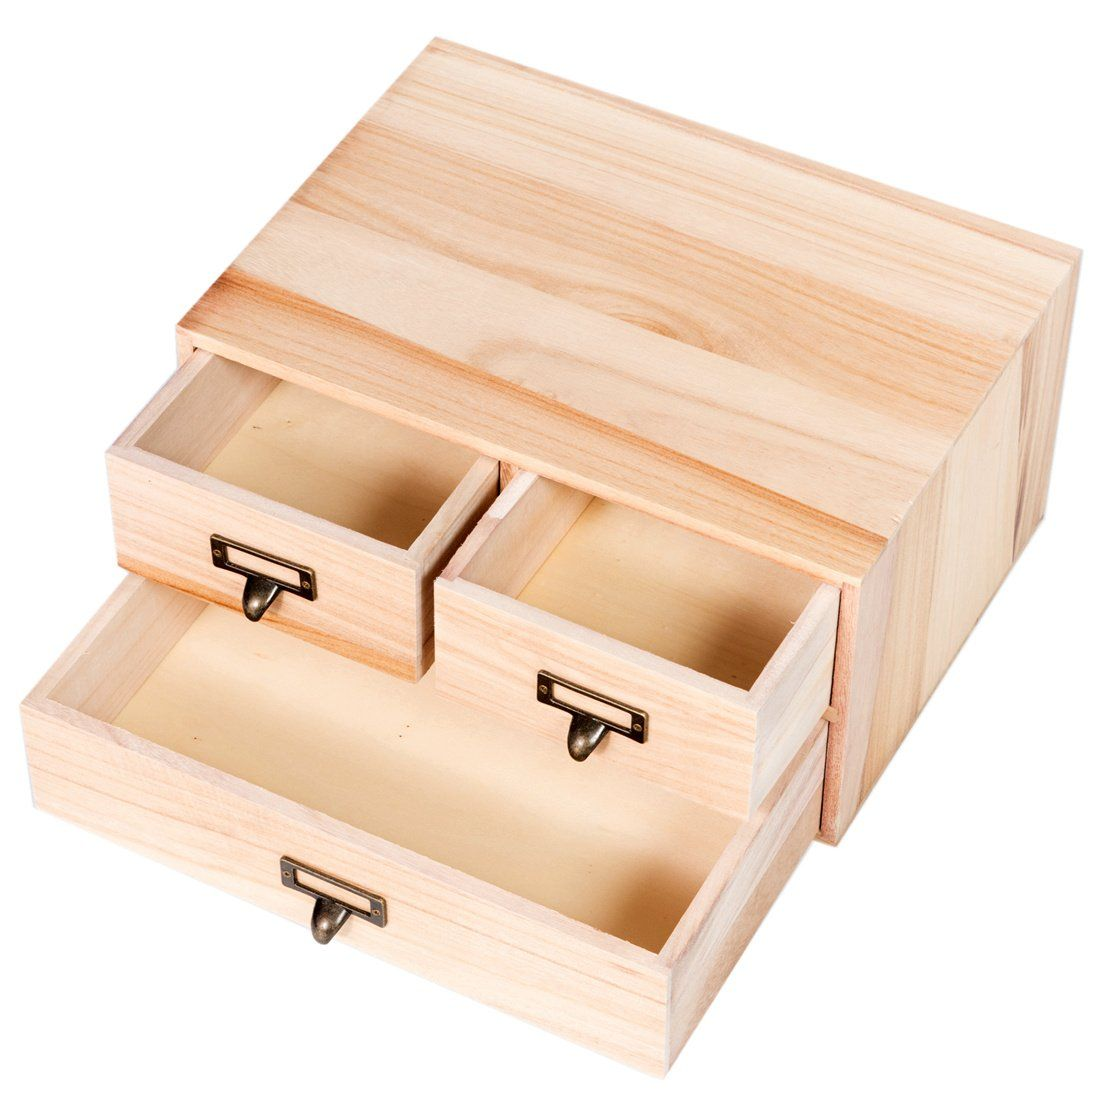 Good Life 3 Drawers Wooden Jewelry Pastel Organizer Storage Box Art Desktop Small Wood Cabinet Box 14 X 10 X Wood Storage Box Wooden Organizer Wooden Storage